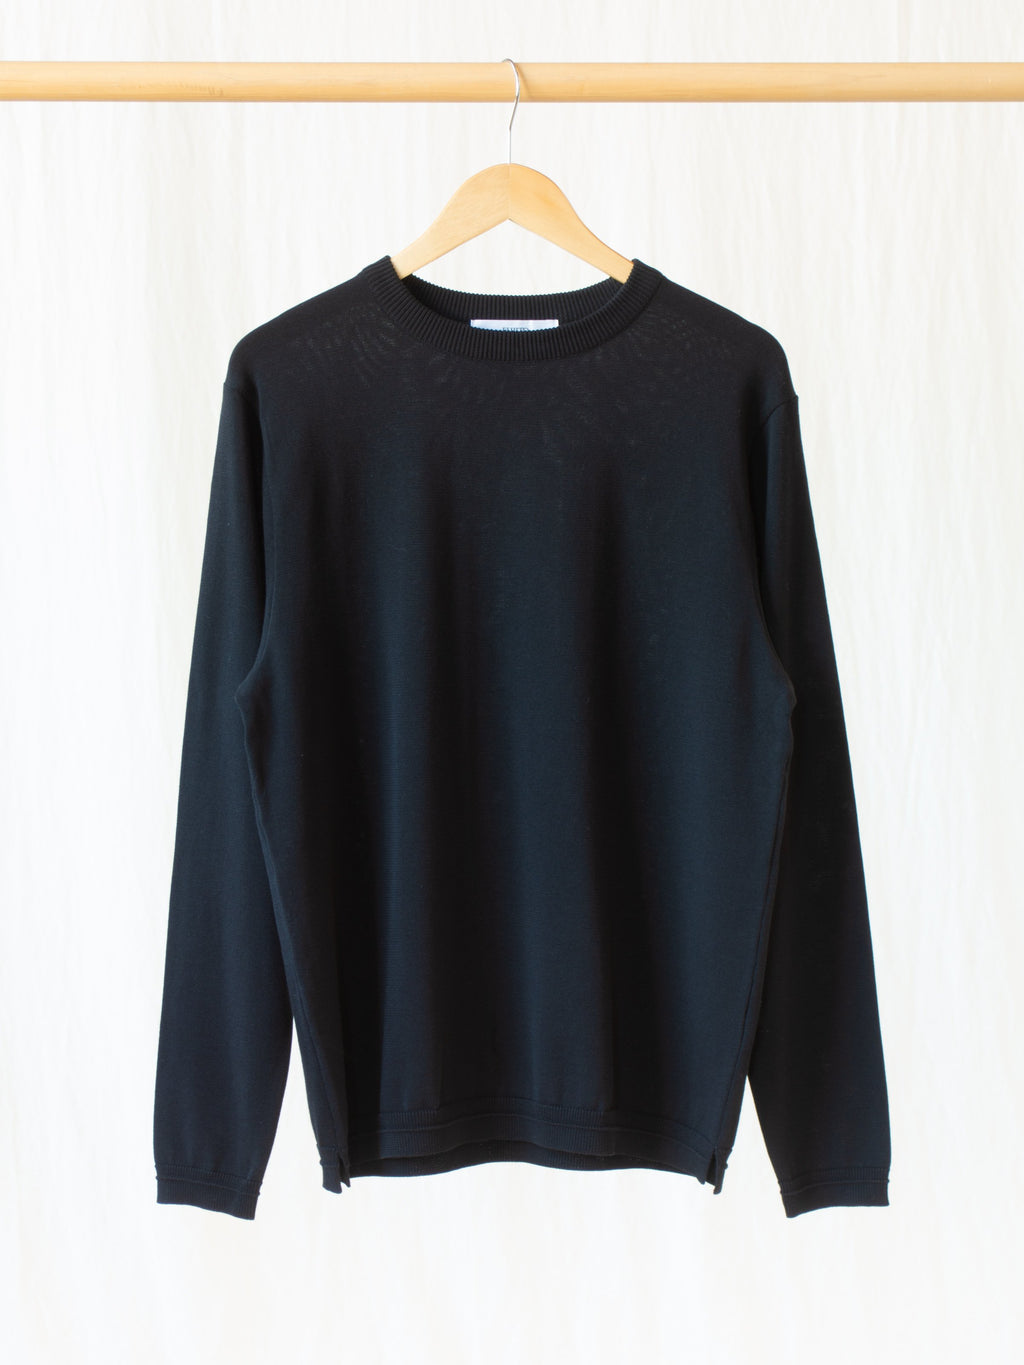 Namu Shop - Fujito L/S Knit - Black